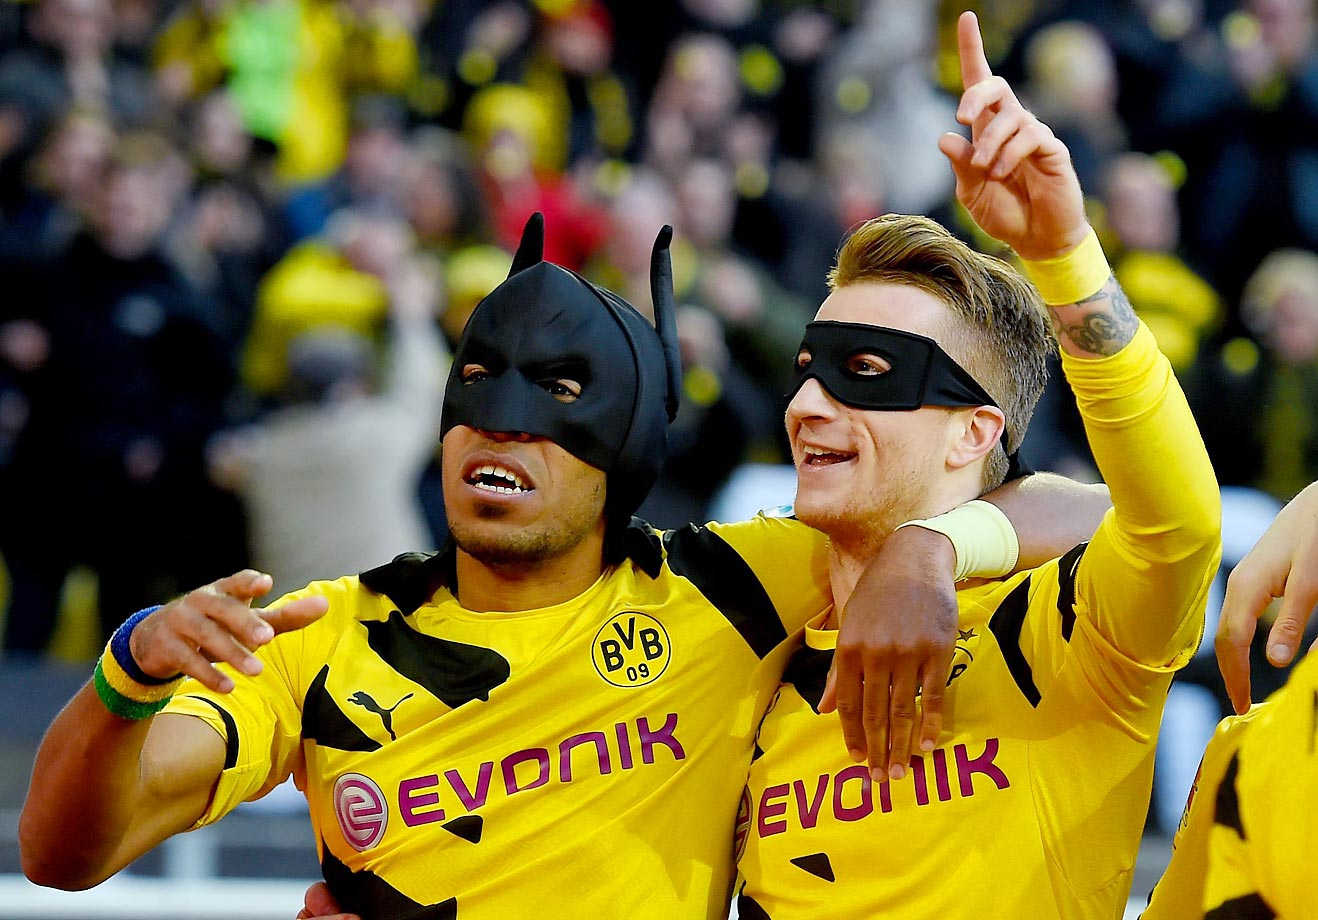 A little Batman and Robin show by Pierre-Emerick Aubameyang and Marco Reus after scoring the team's first goal during their Bundesliga match.